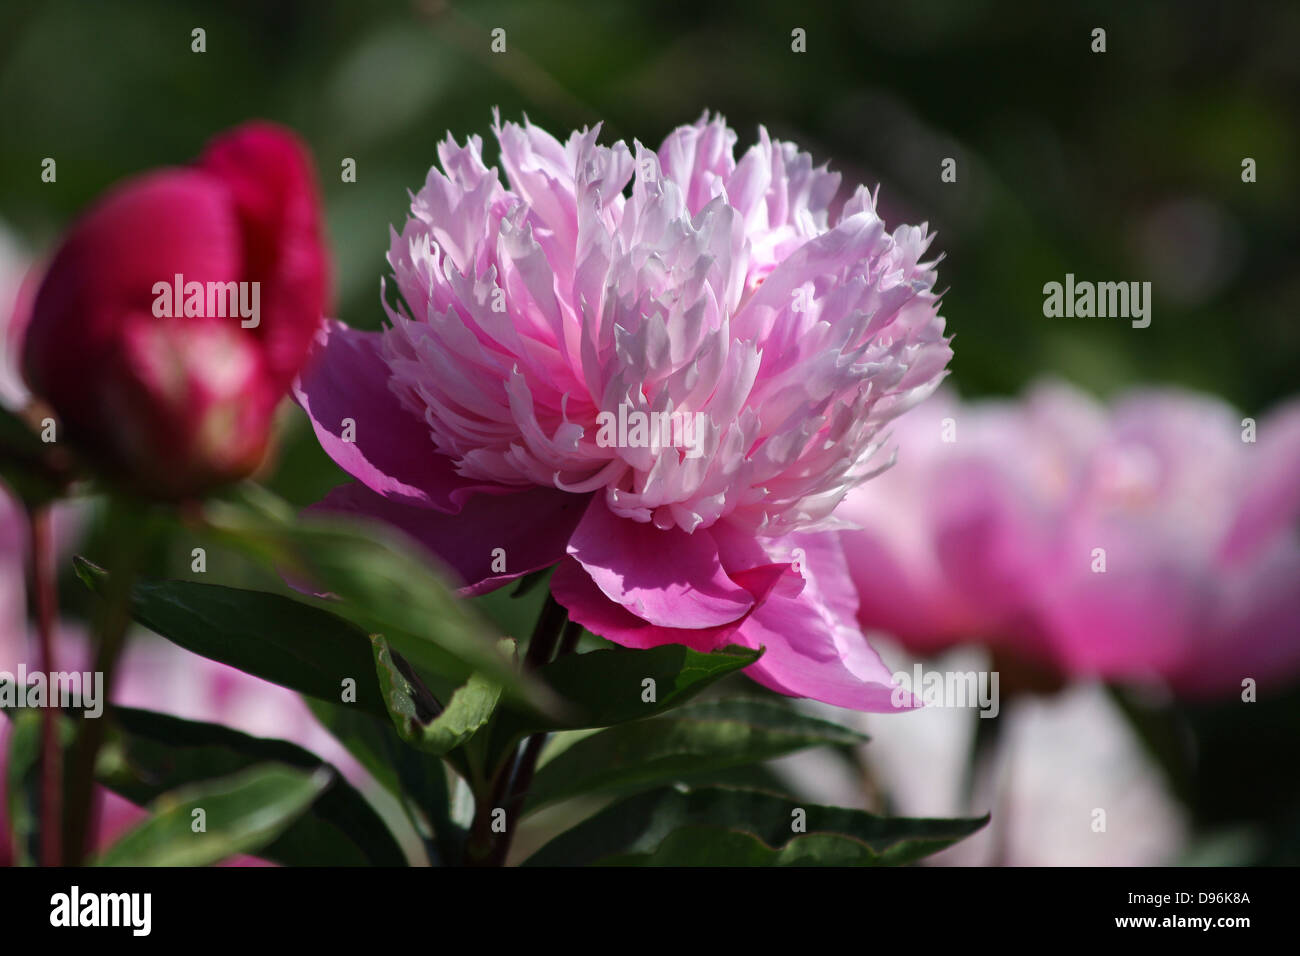 Pink Peony, Peonies with open flowers - Stock Image